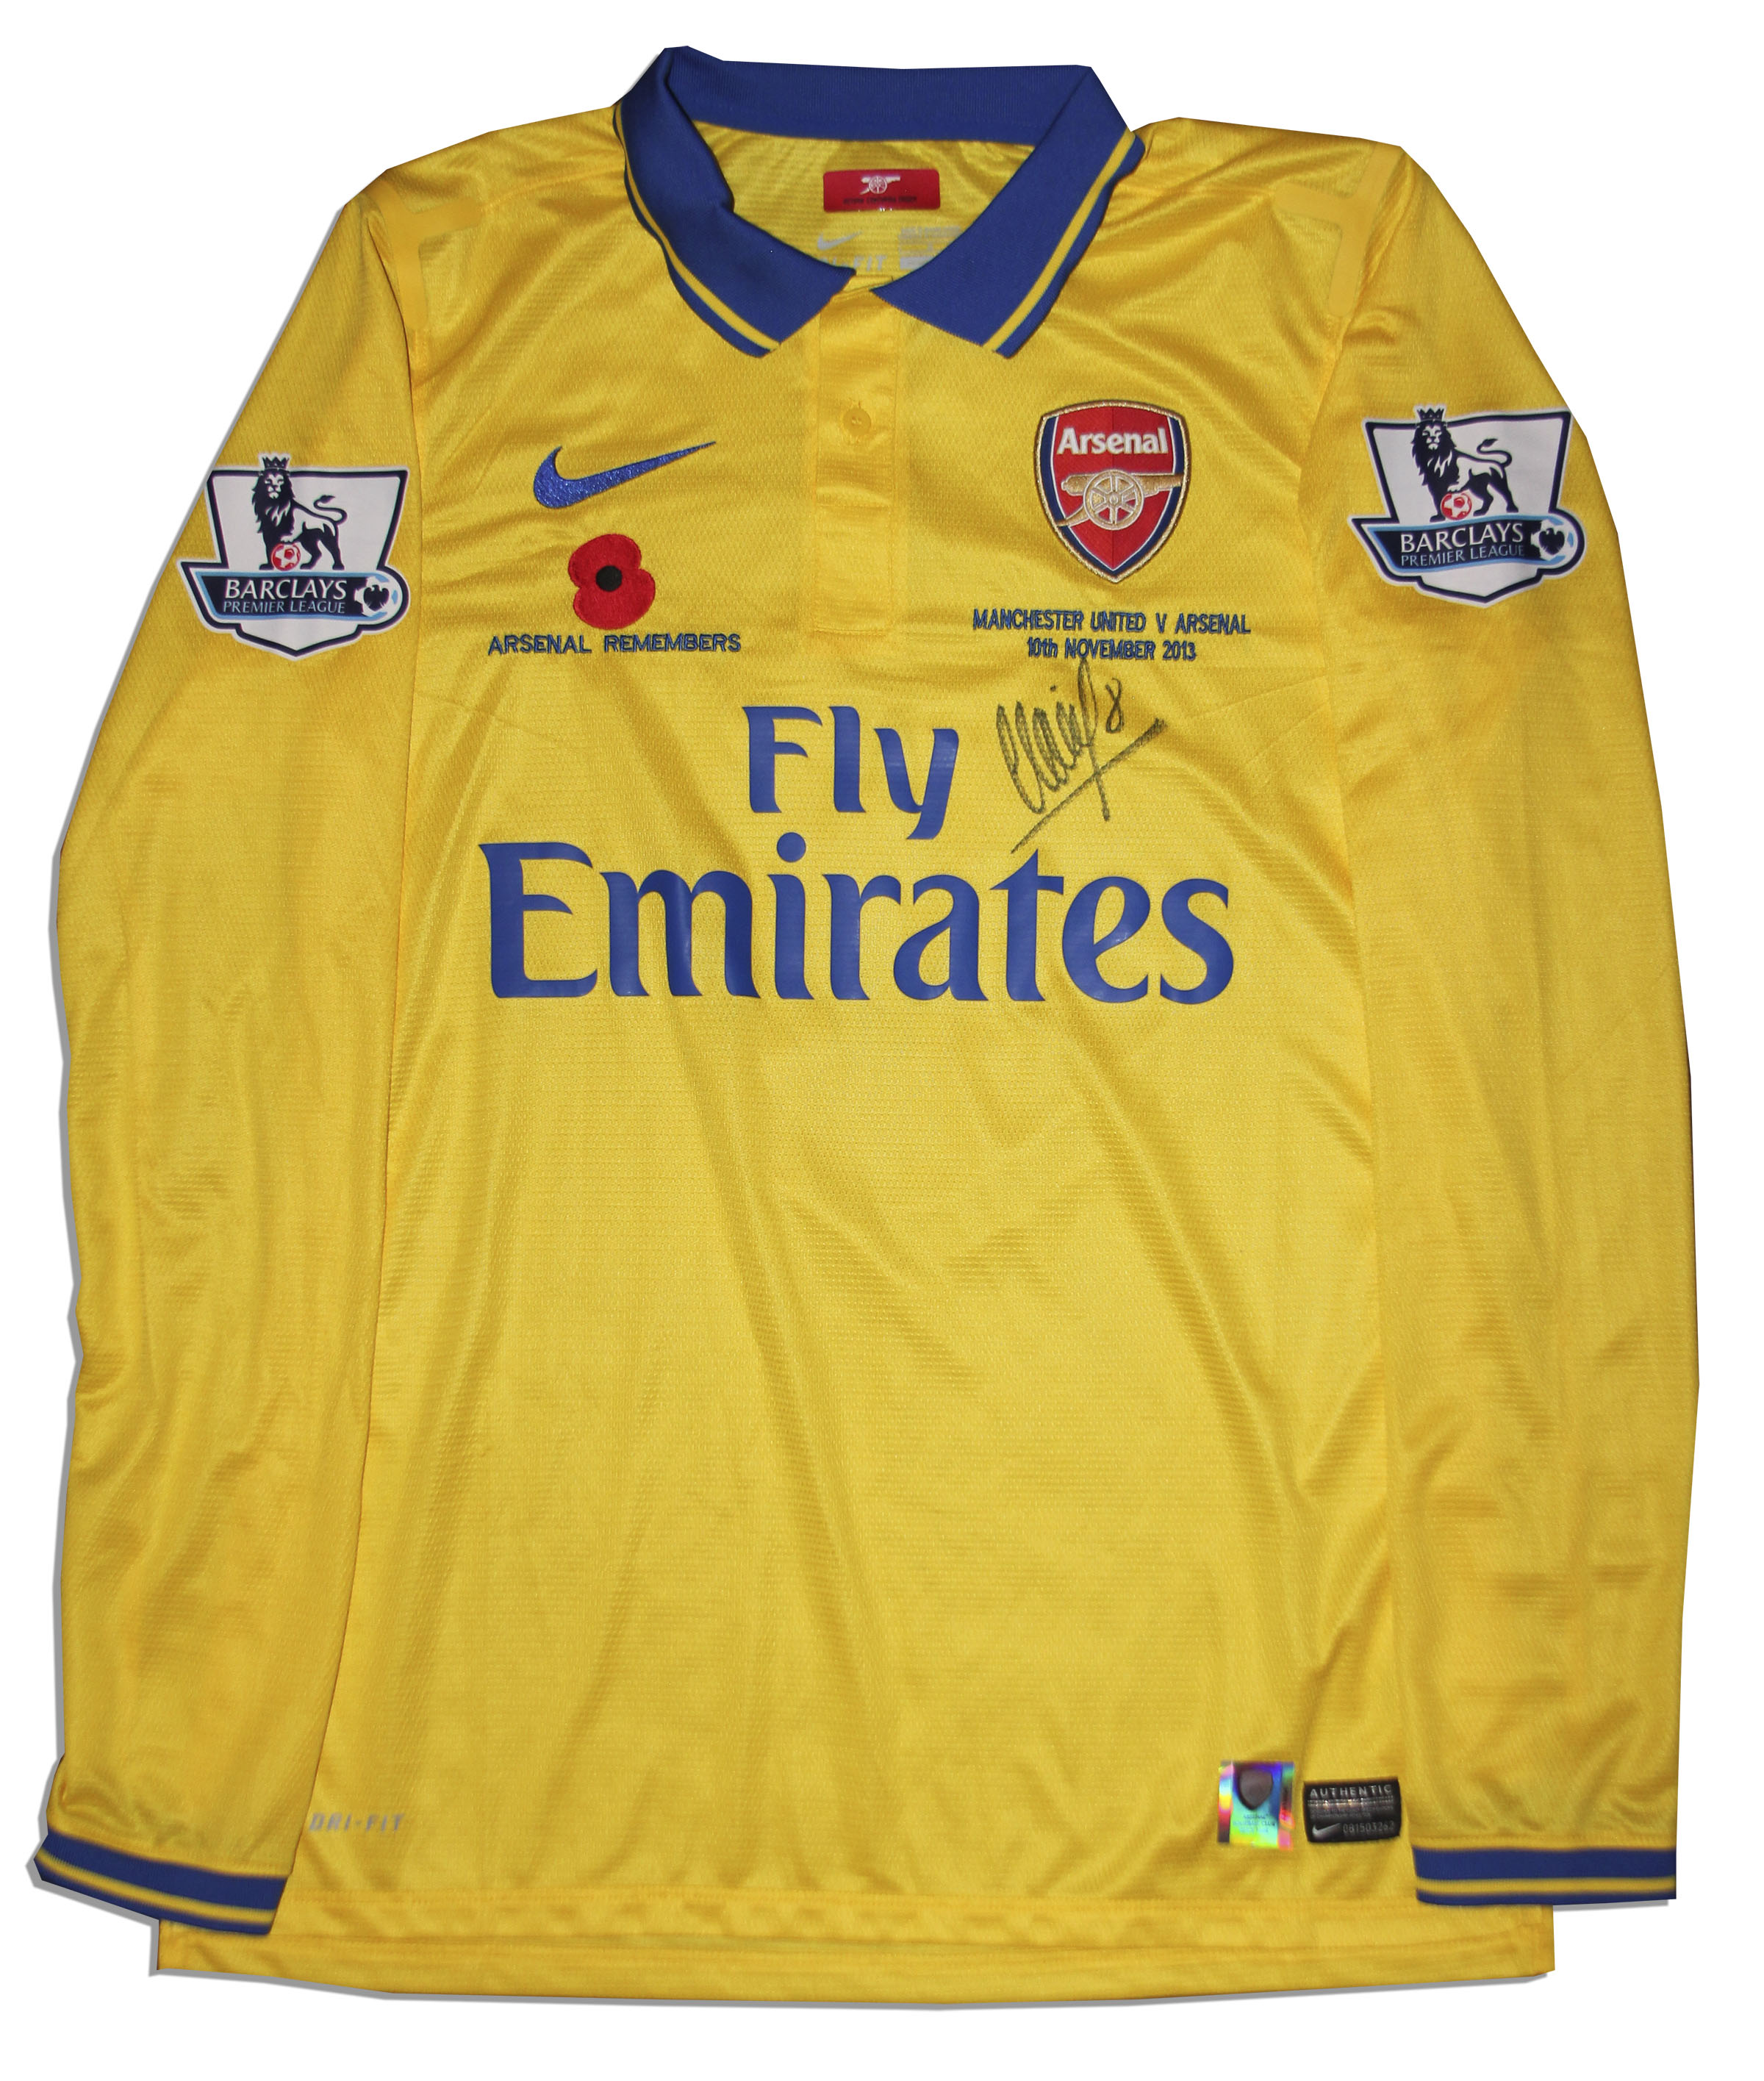 dee1098f0 Arsenal Home Shirt 2013 14 Buy